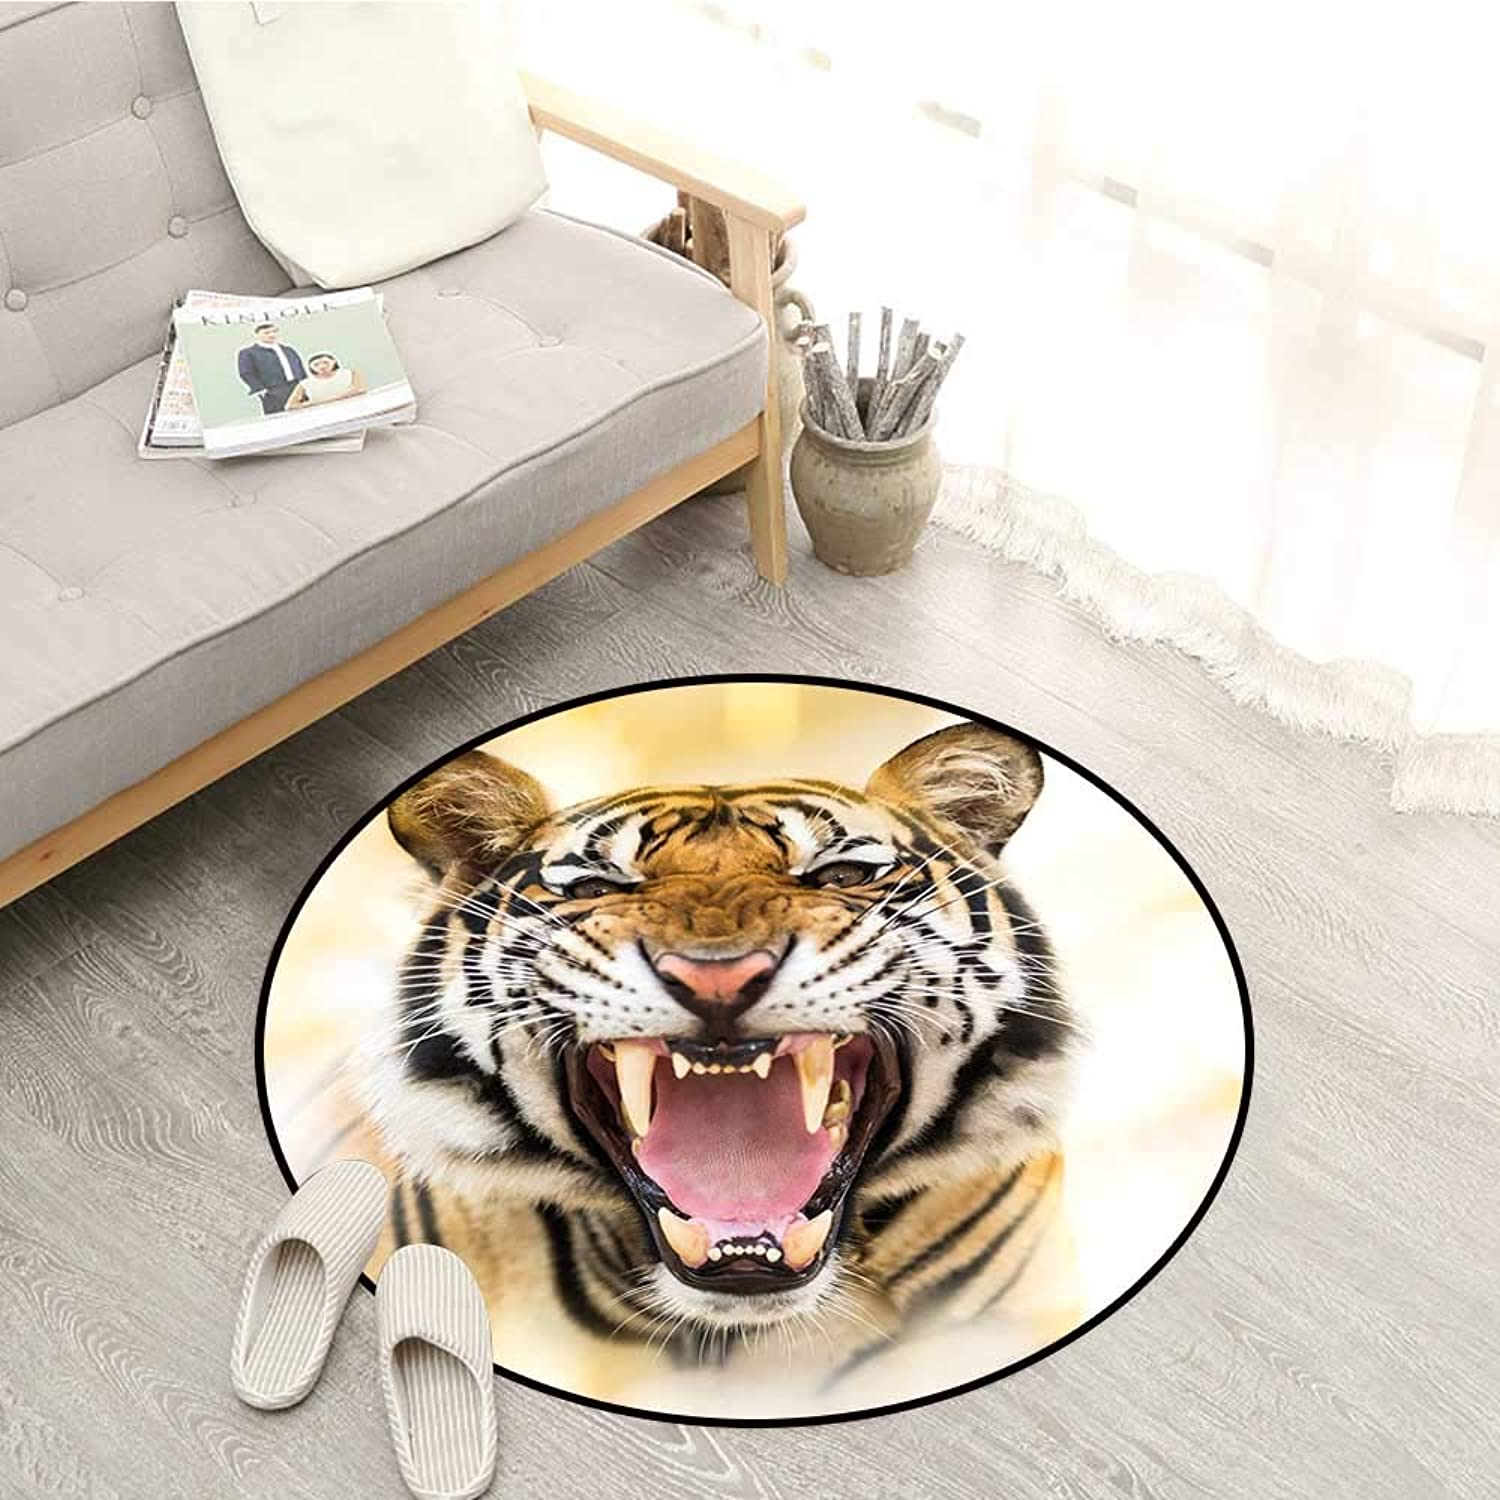 Tiger Living Room Round Rugs Young Panthera Tigrey Altaica Growling in Angry Manner Portrait of a Young Large Cat Sofa Coffee Table Mat 4'11  Multicolor